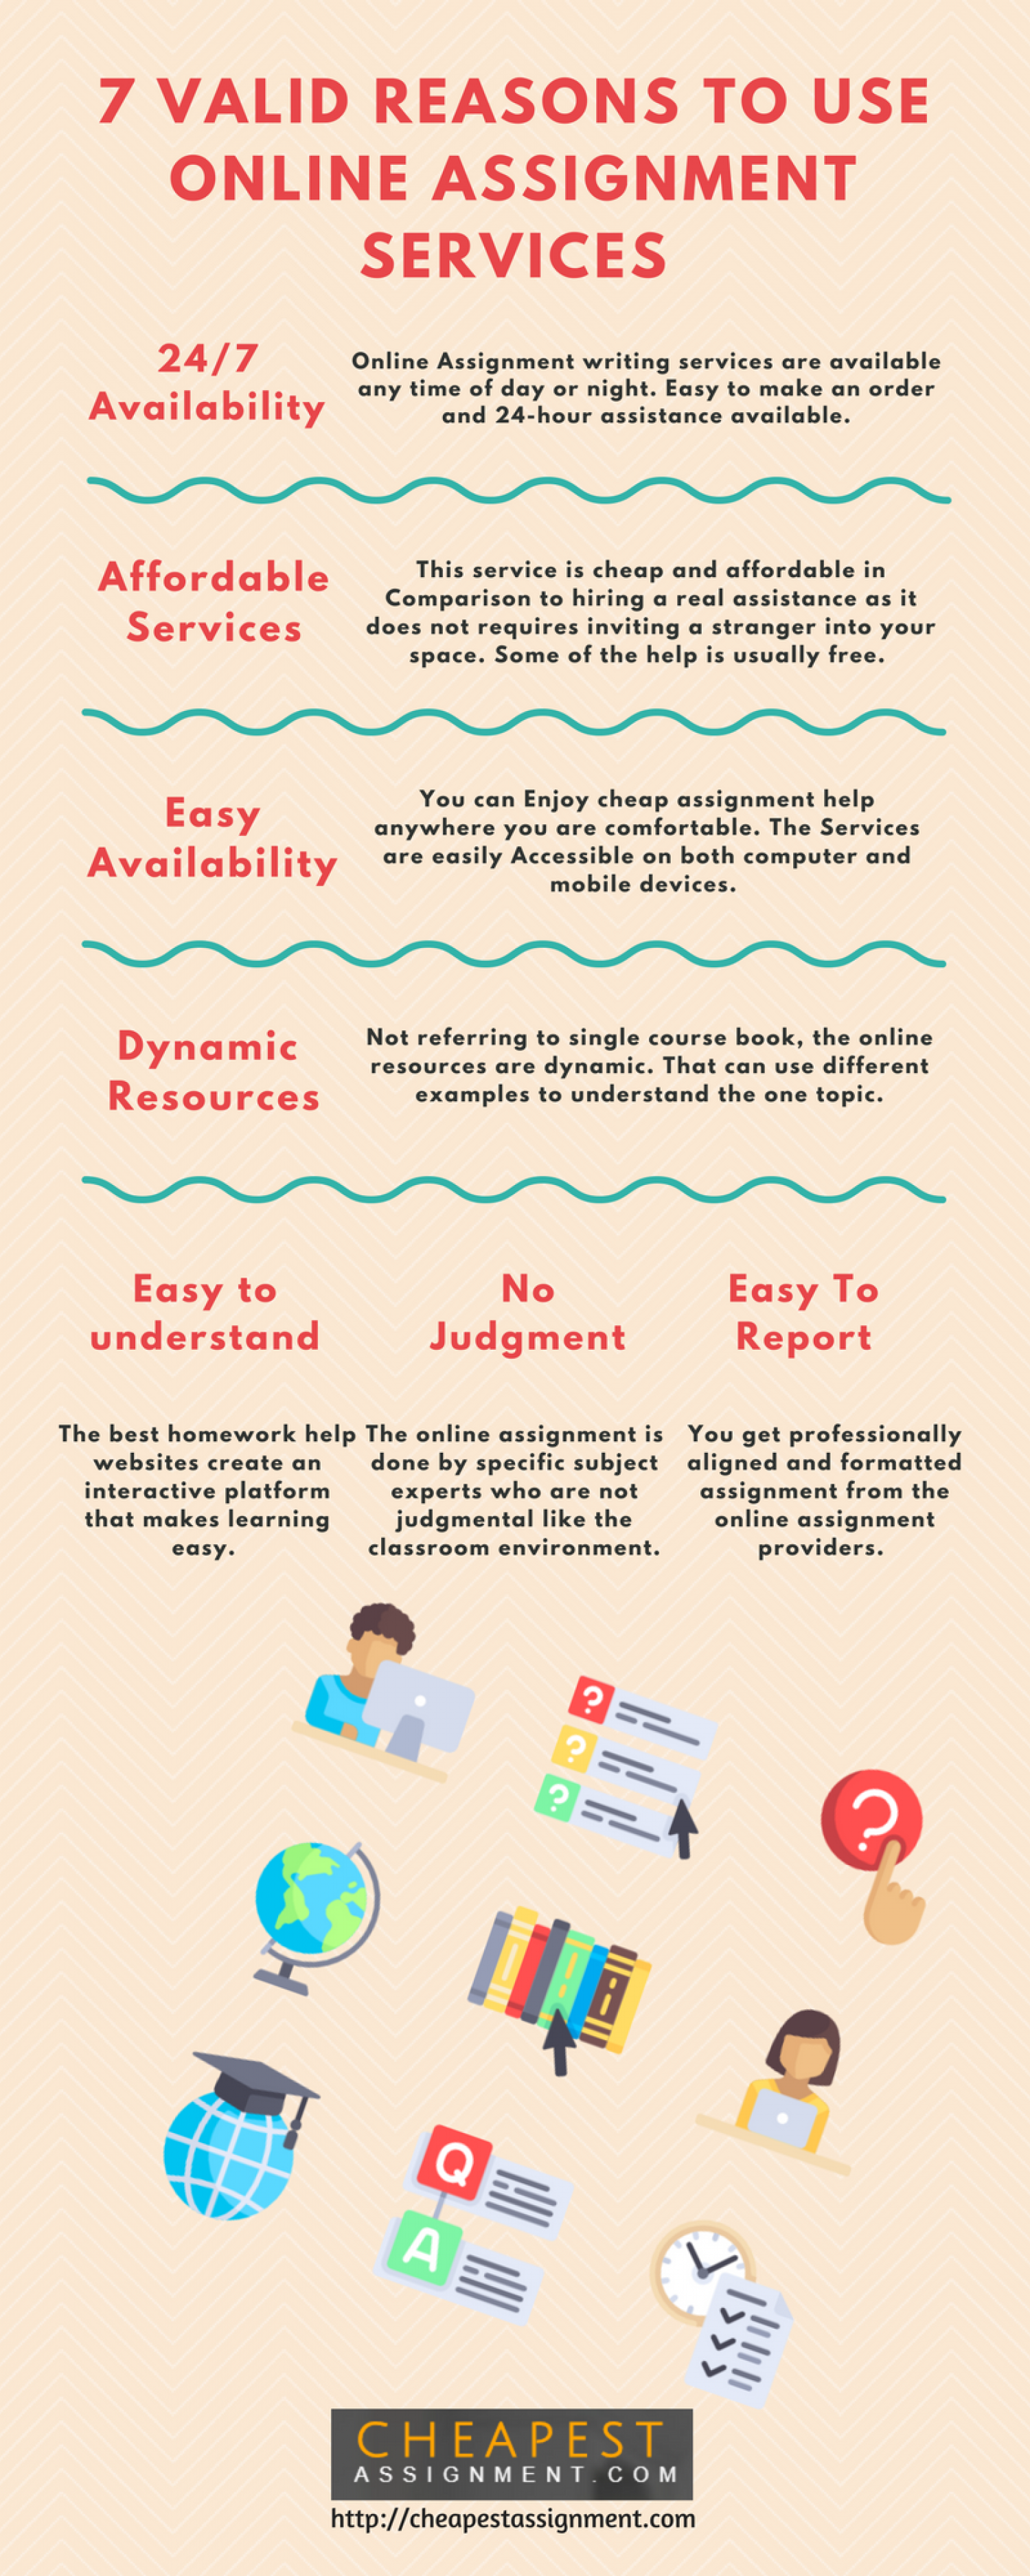 7 VALID REASONS TO USE ONLINE ASSIGNMENT SERVICES Infographic